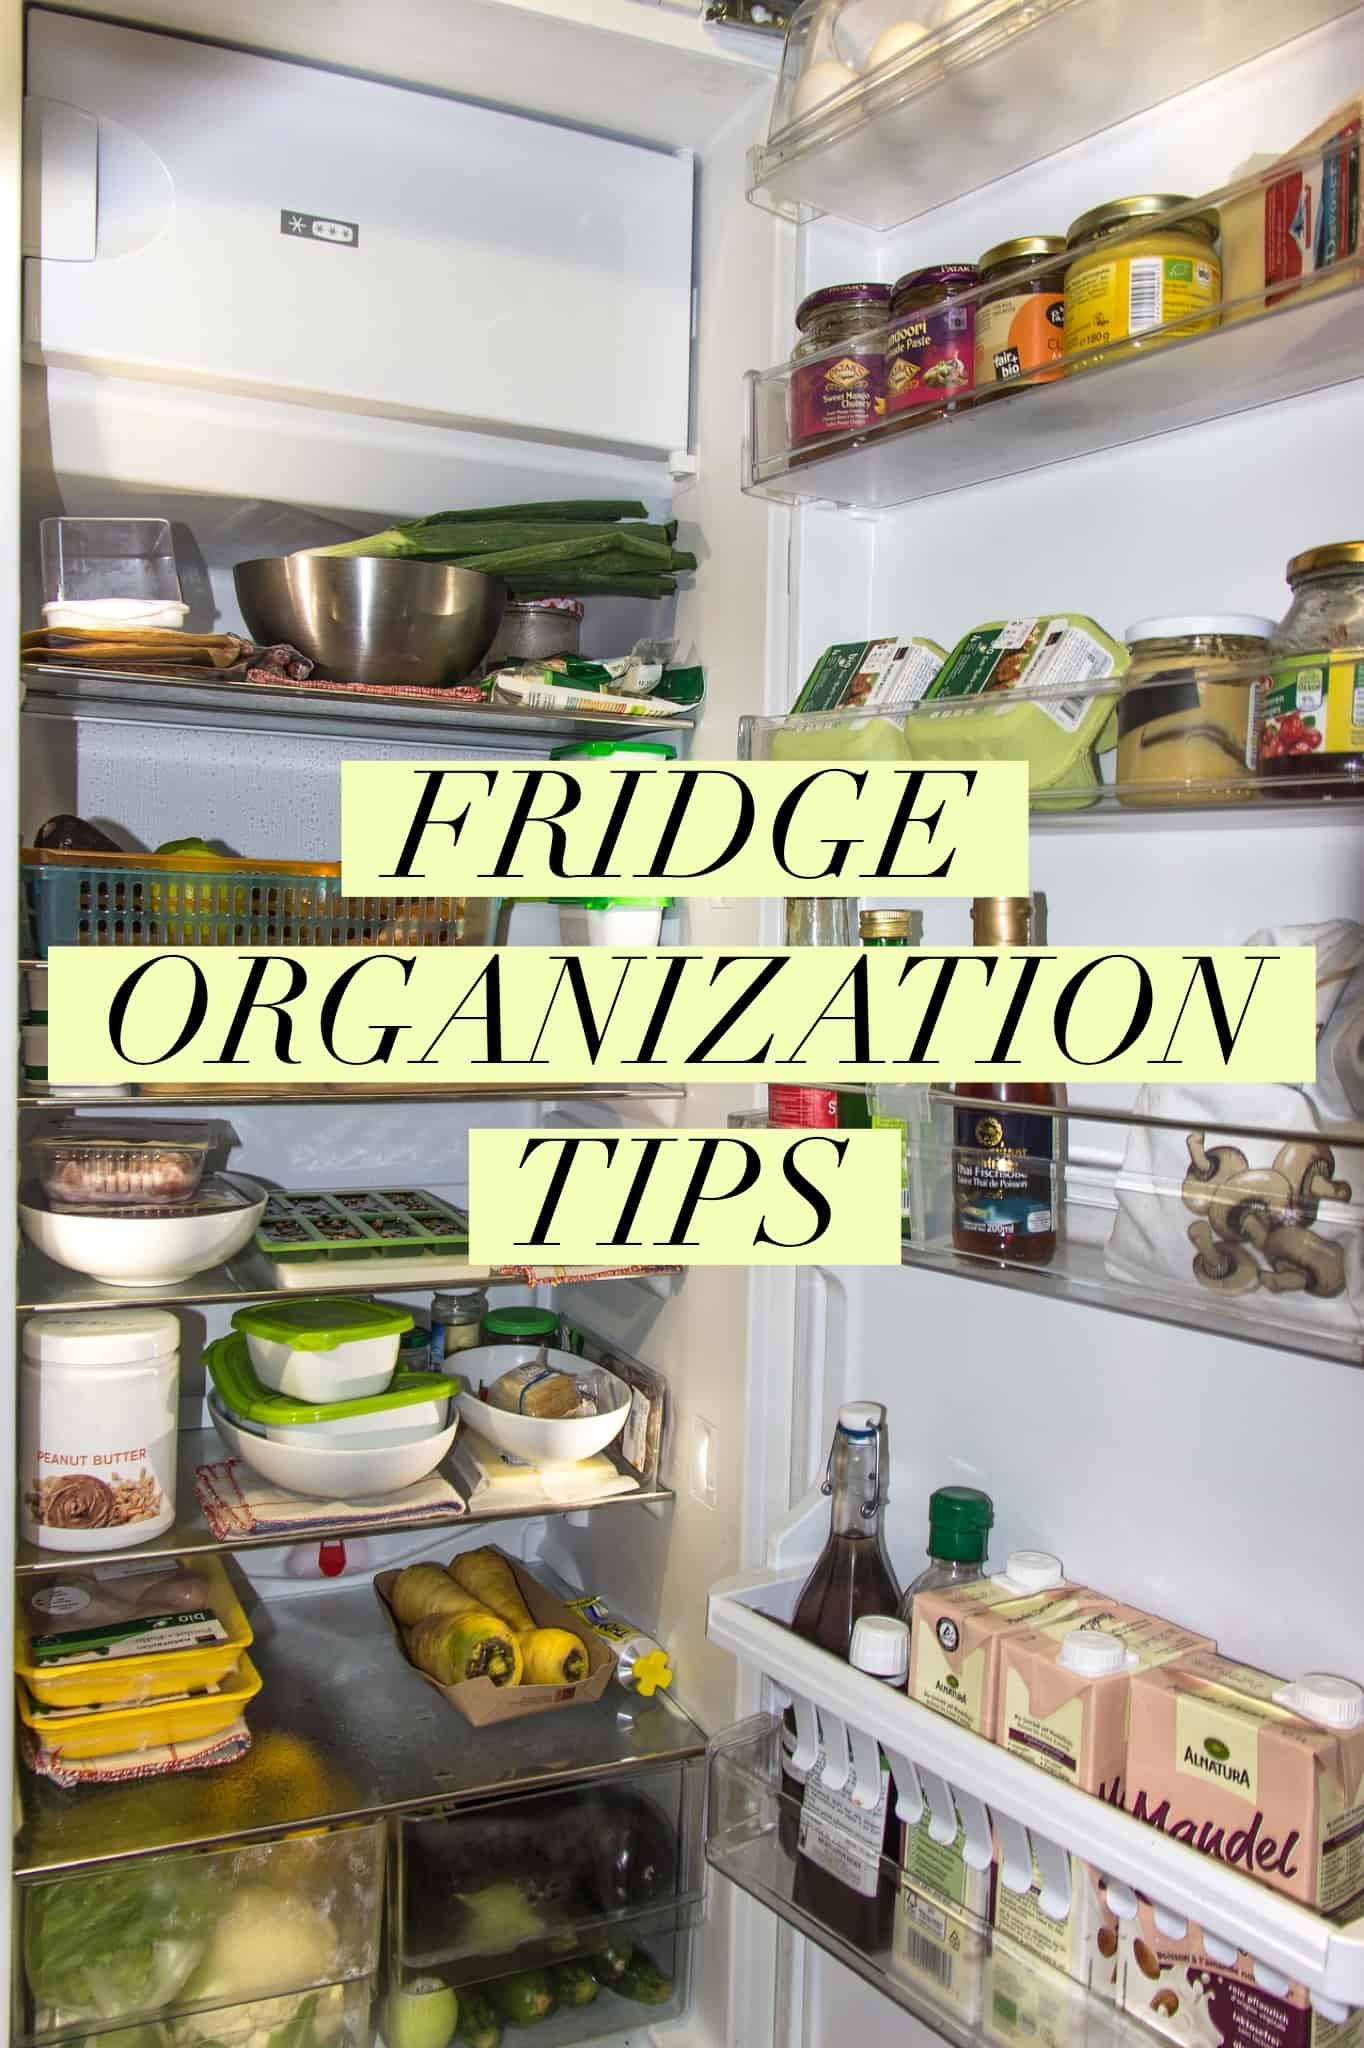 fridge organization tips title